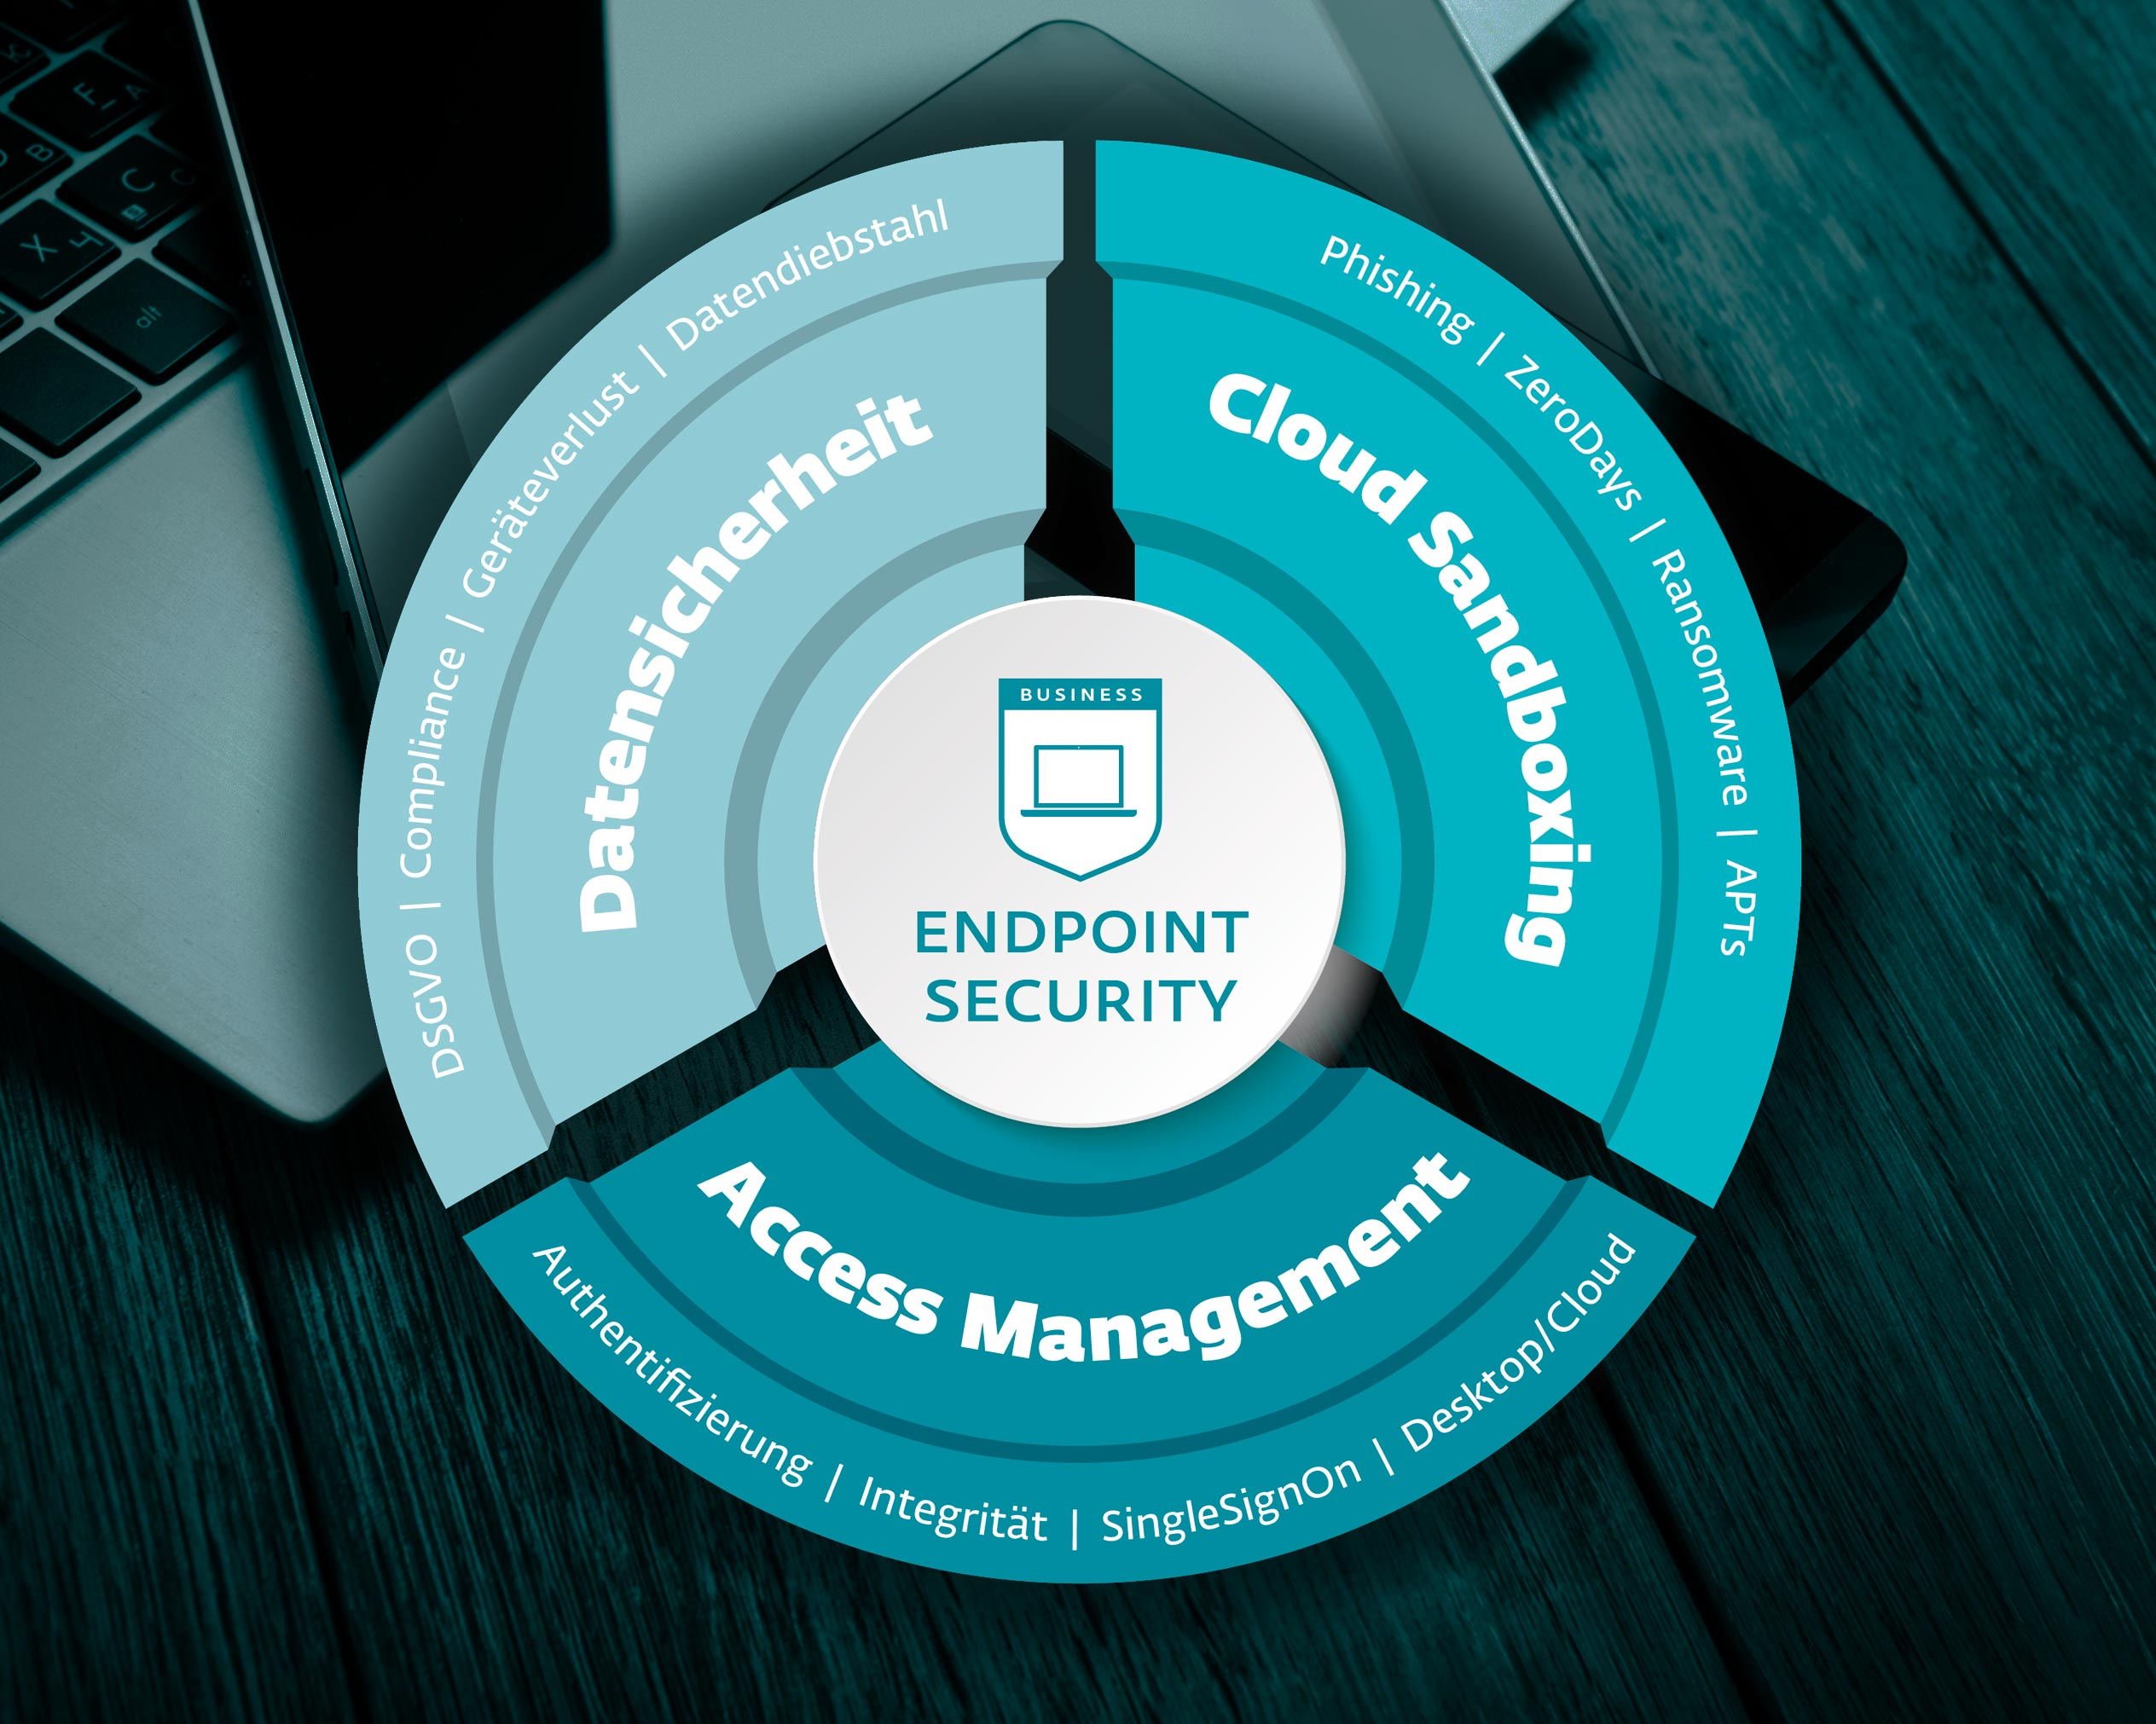 itsa365: Graphics on laptop about endpoint security